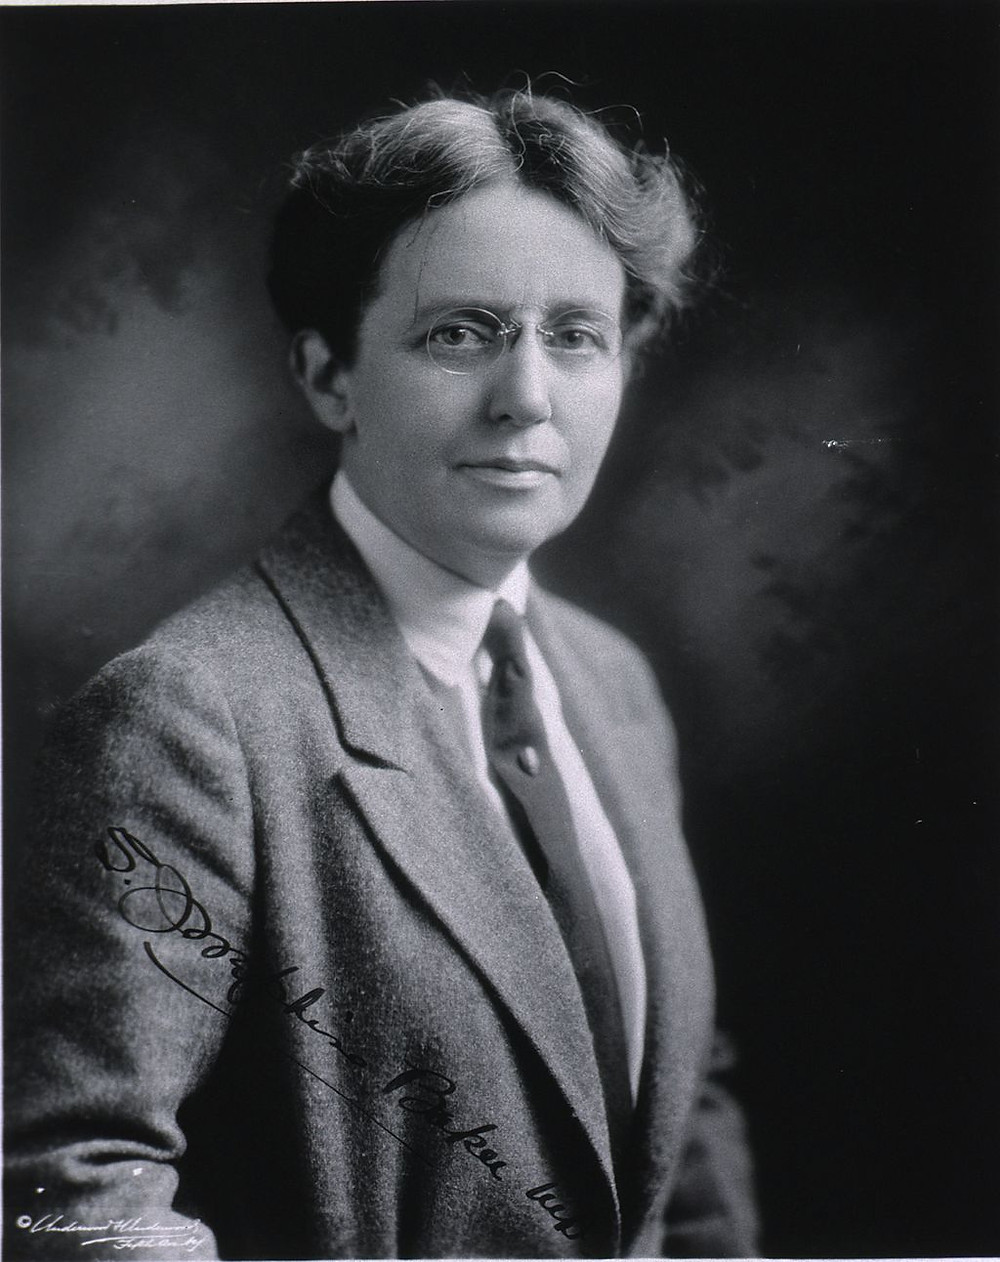 Dr Sara Josphine Baker MD. Source: Wikimedia